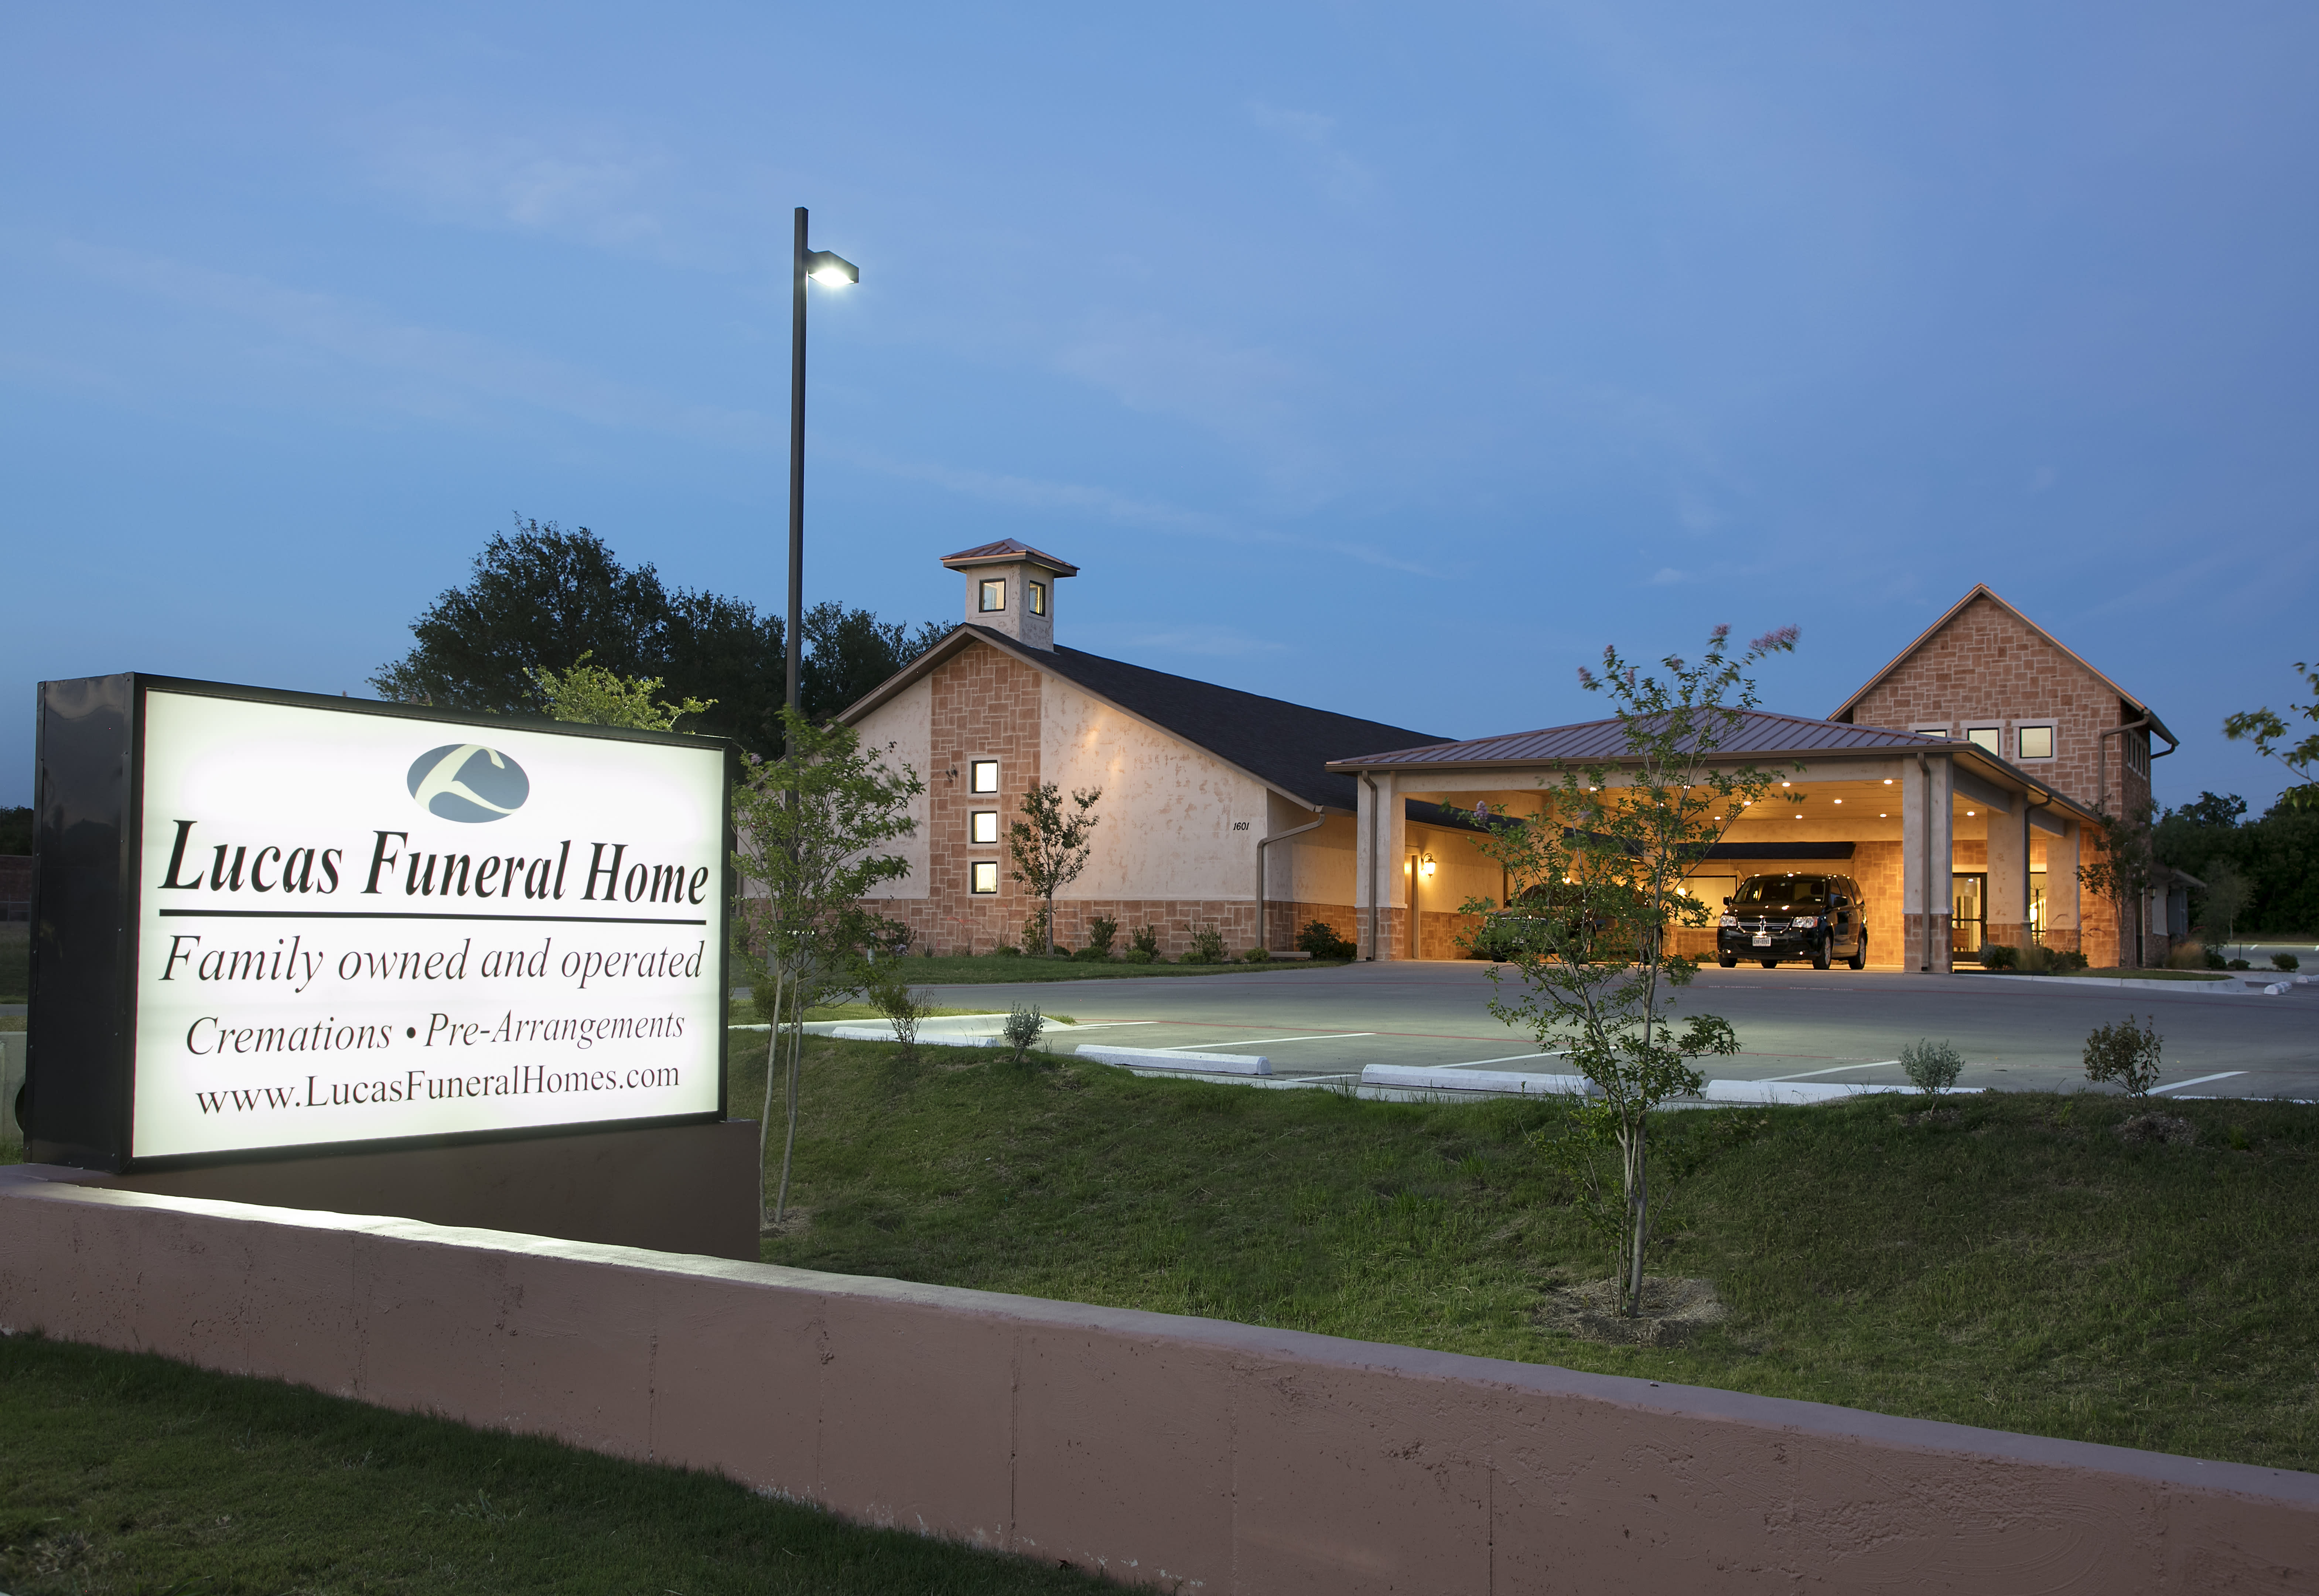 Funeral Homes & Cremation Services | Hurst & Grapevine, TX